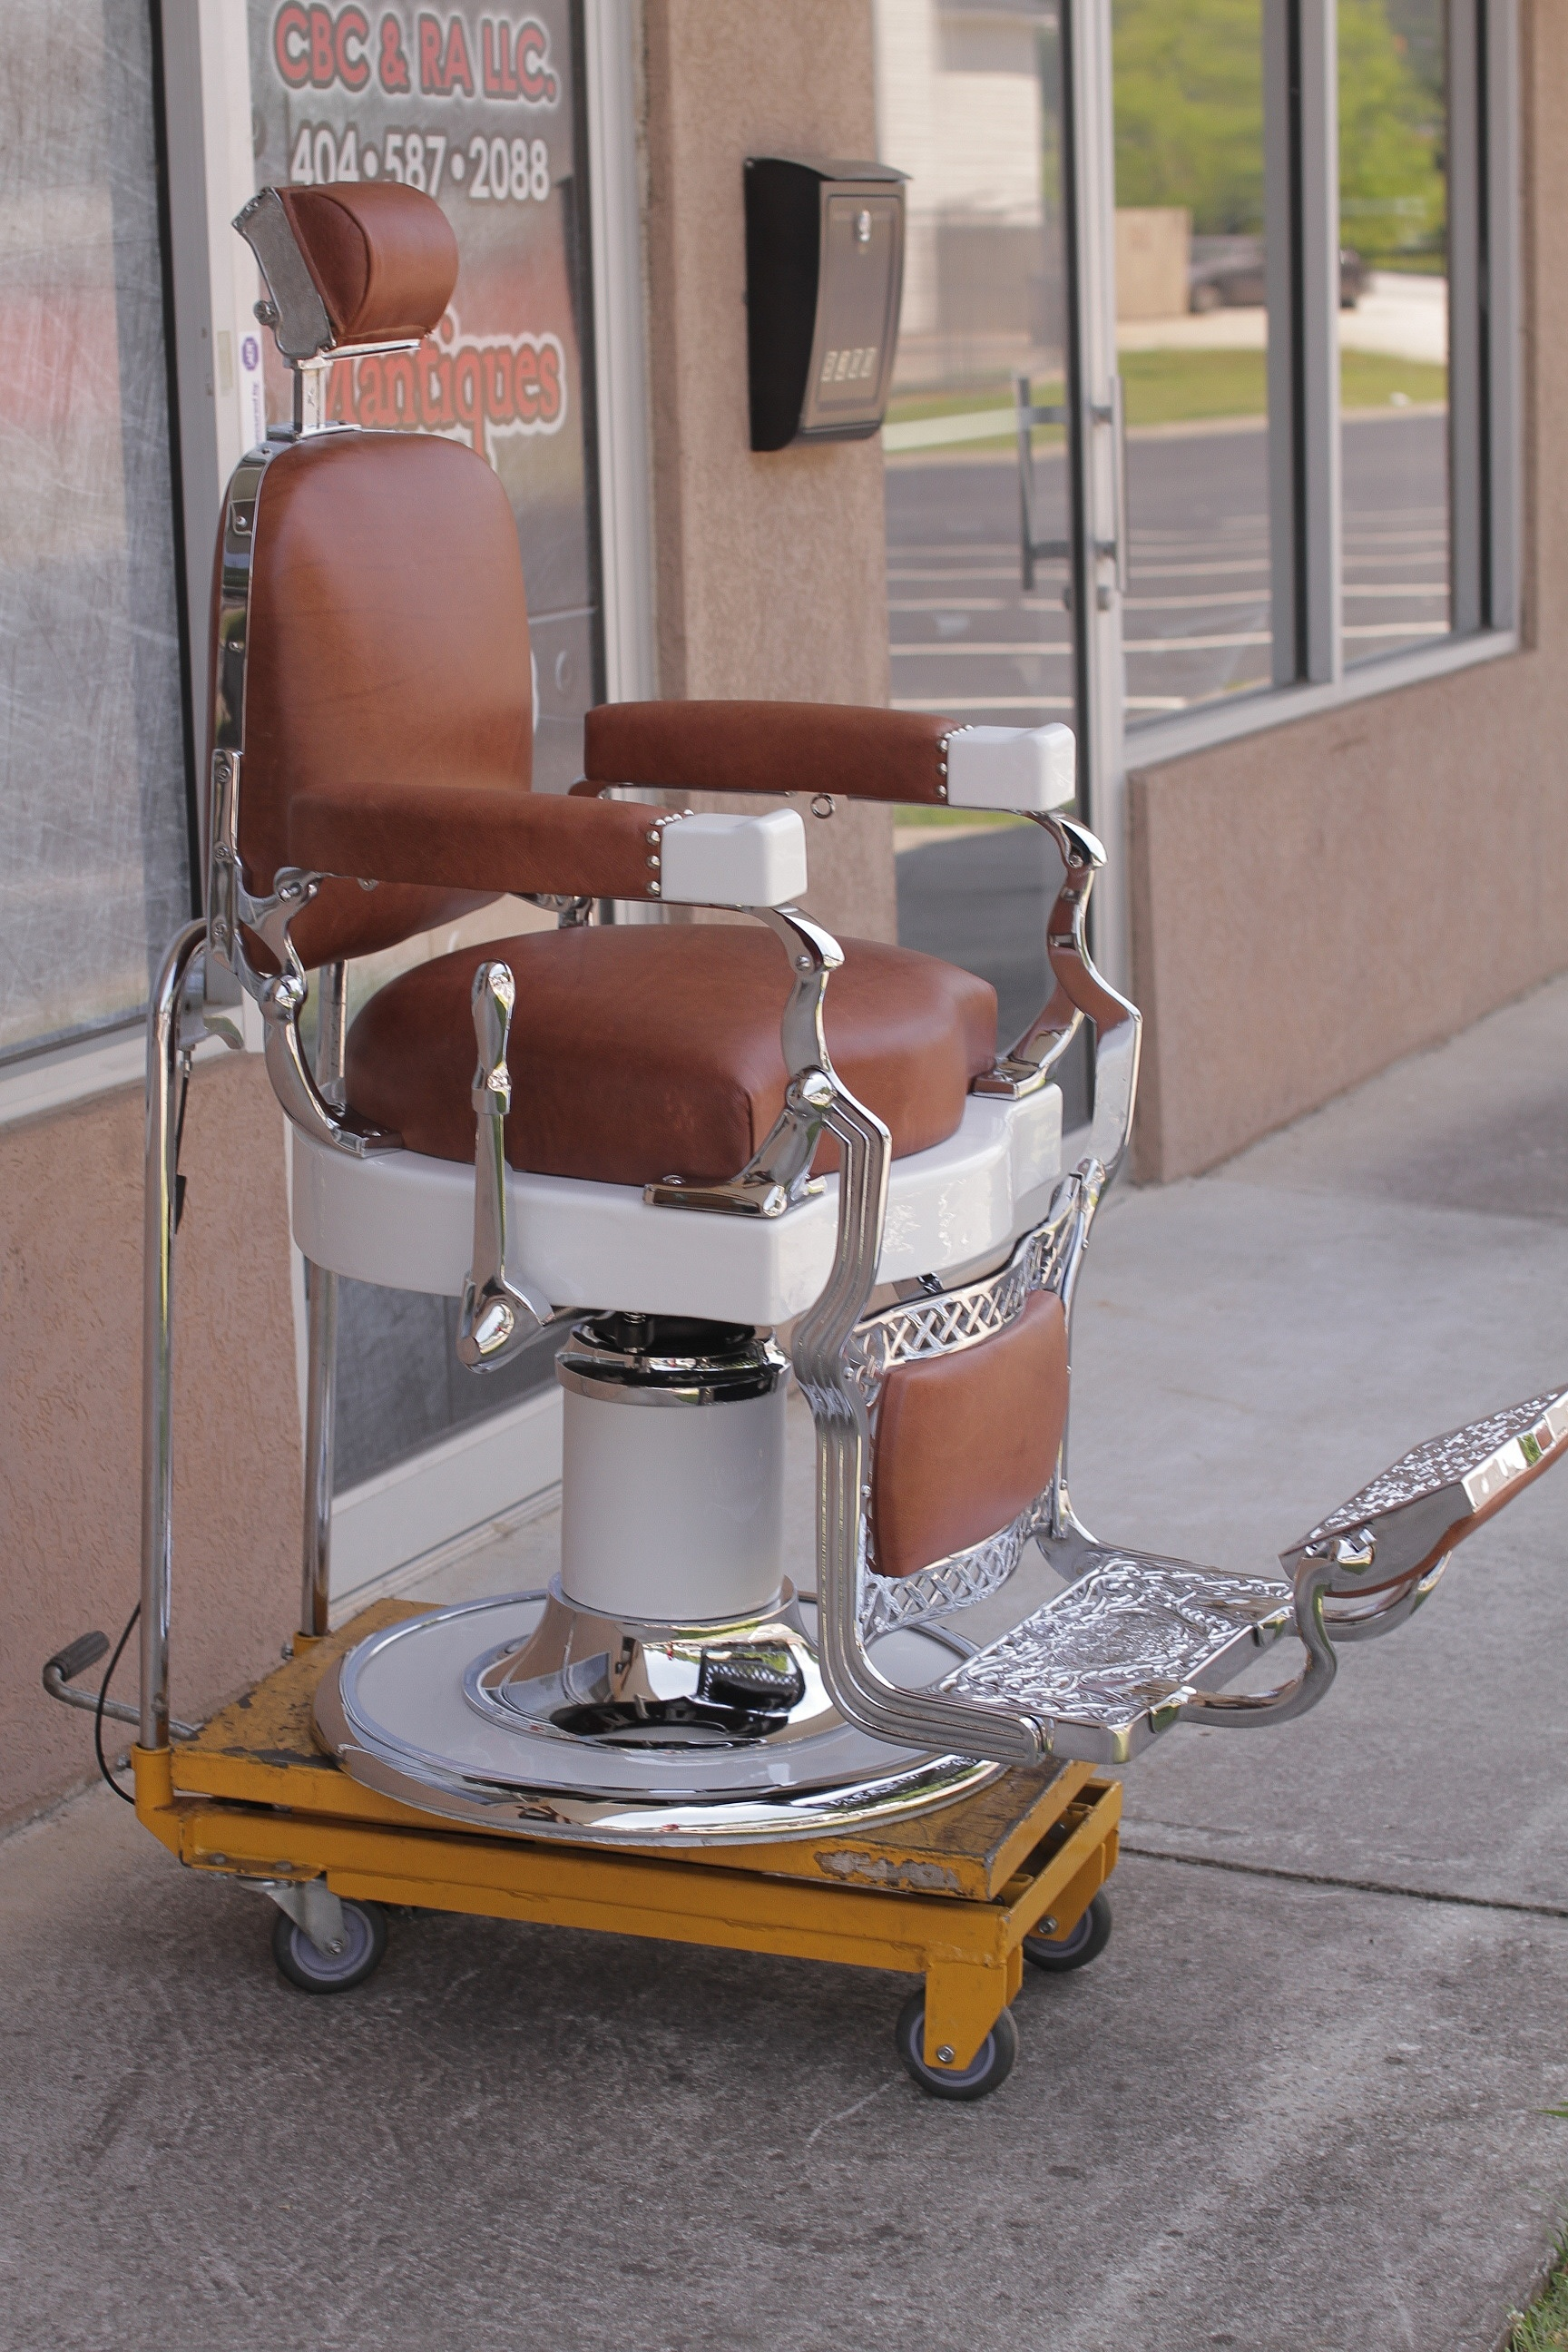 Koken Barber Chairs Koken Barber Chairs Custom Barber Chairs And Restorations